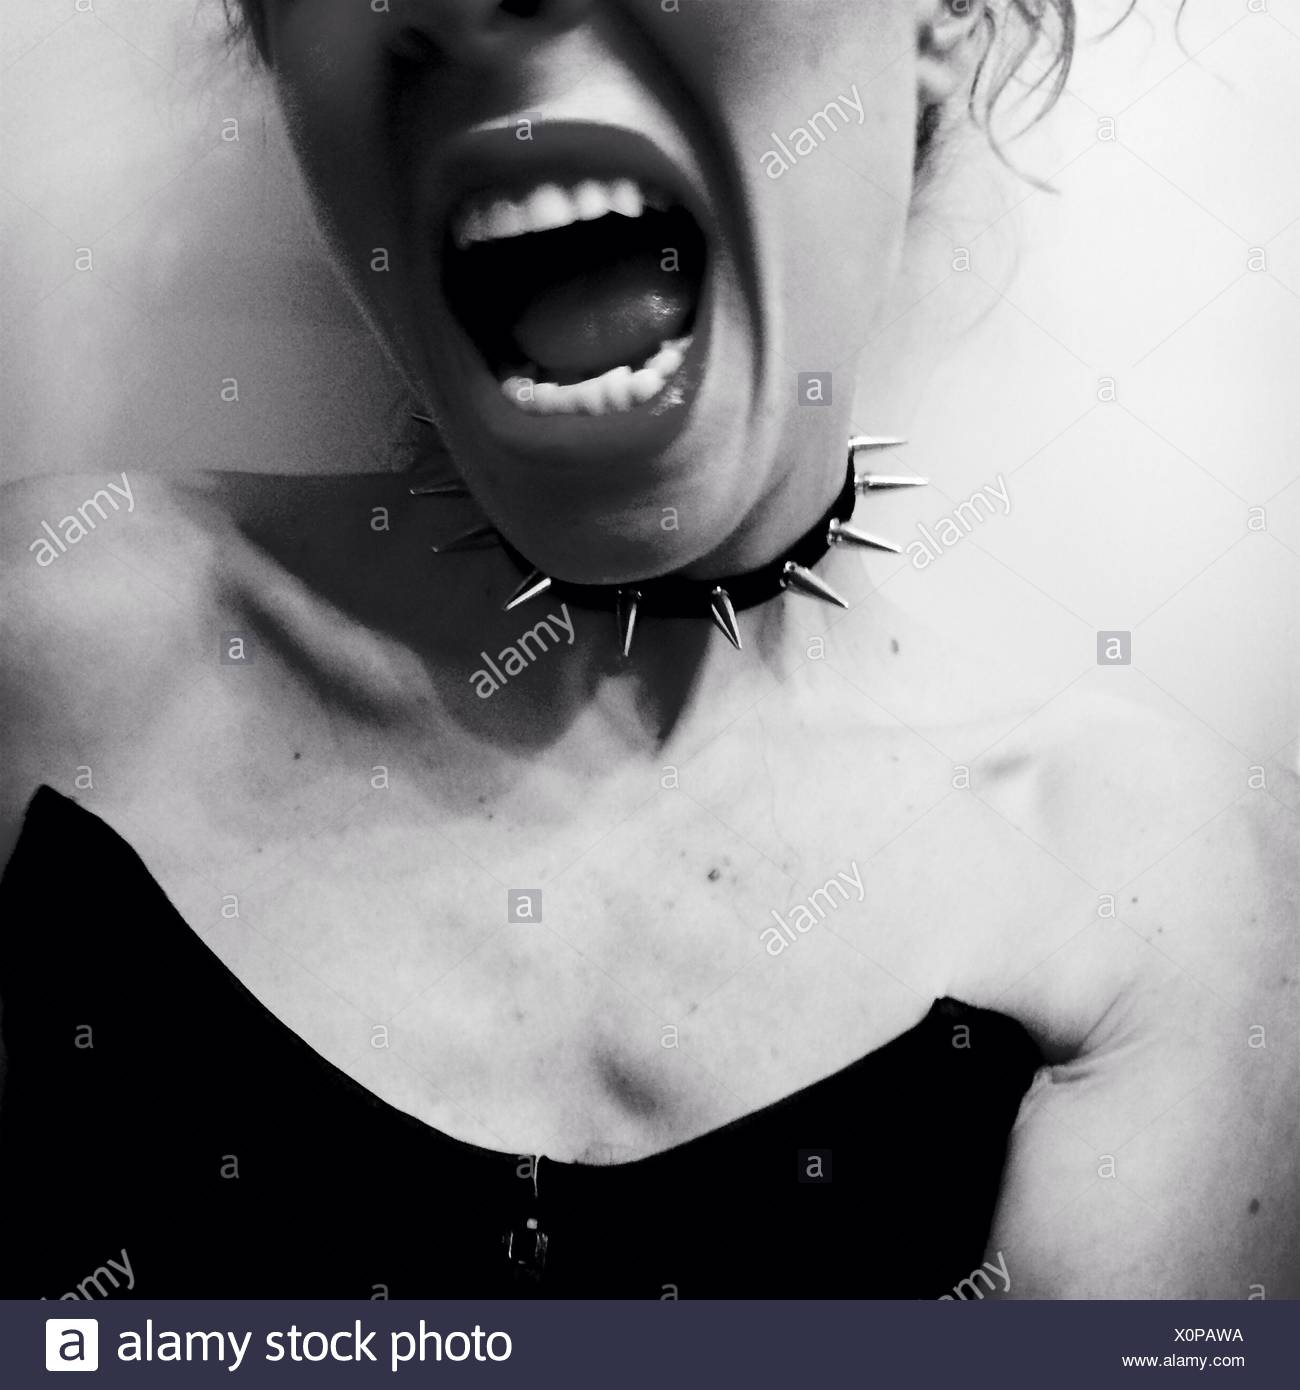 Midsection Of Young Woman Wearing Spiked Choker With Mouth Open Against White Background - Stock Image